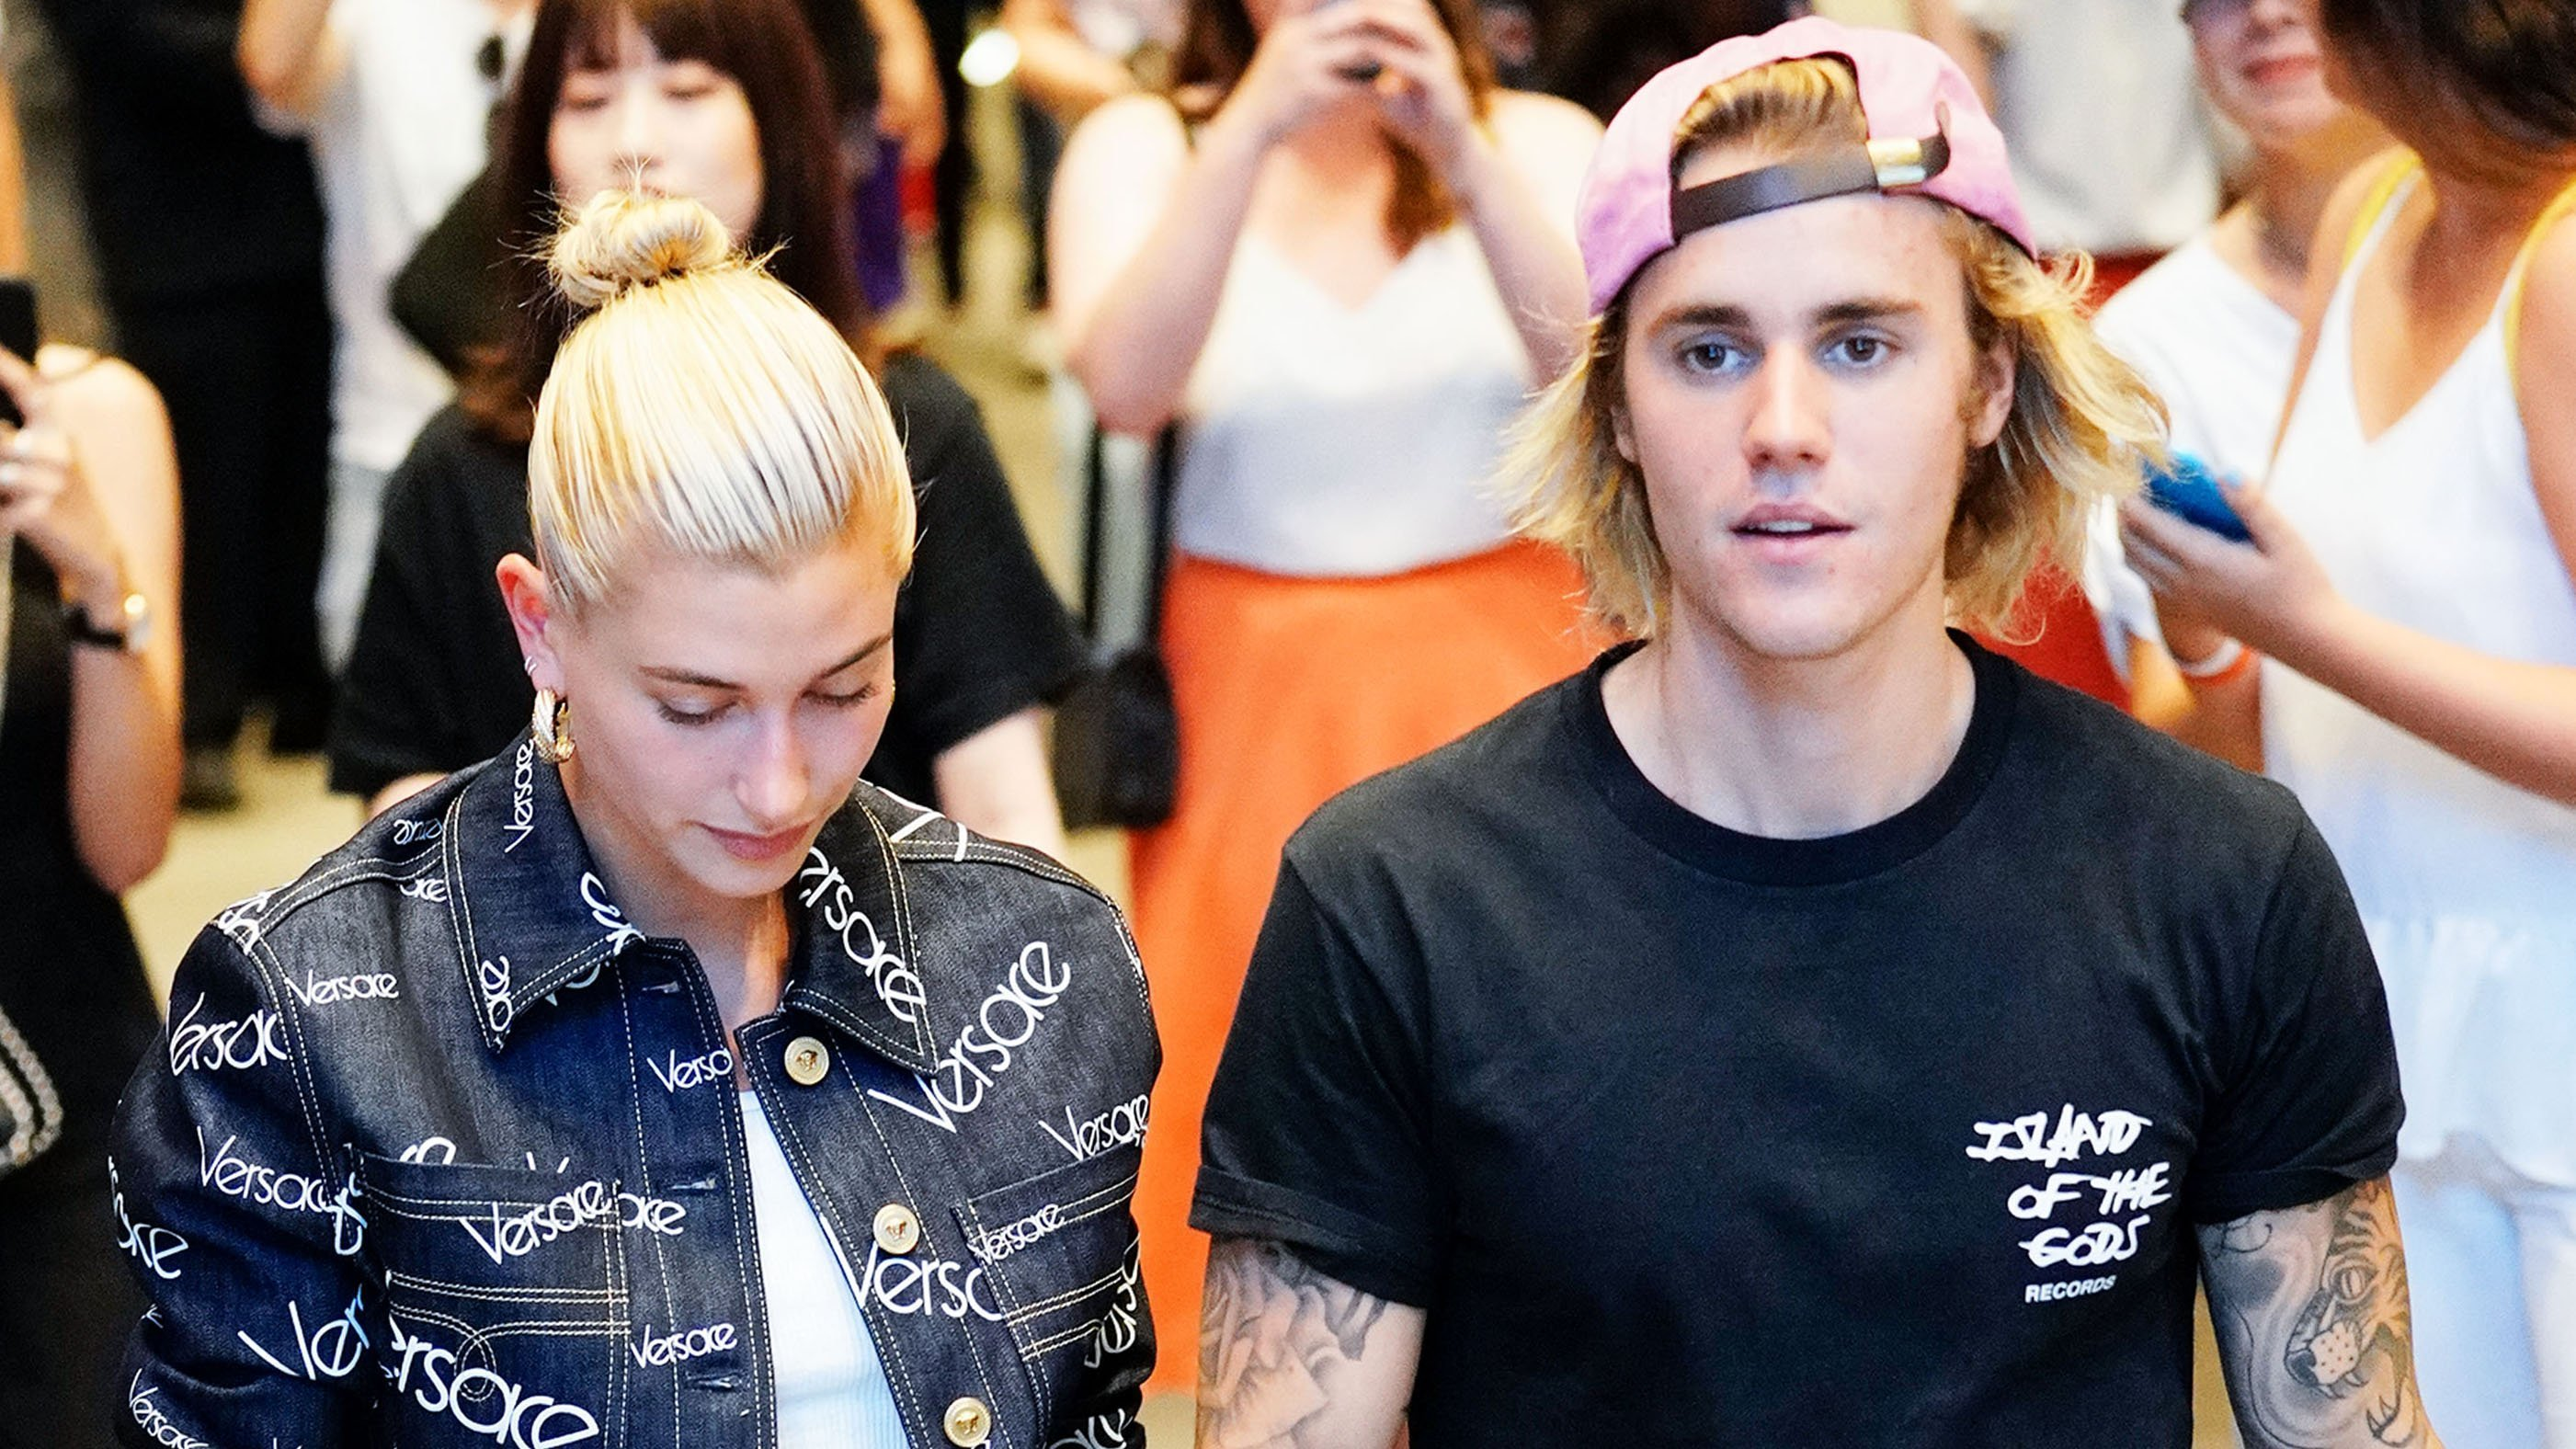 The engagement of Justin Bieber and Hailey Baldwin may seem sudden, but the pair have actually known each other for years.